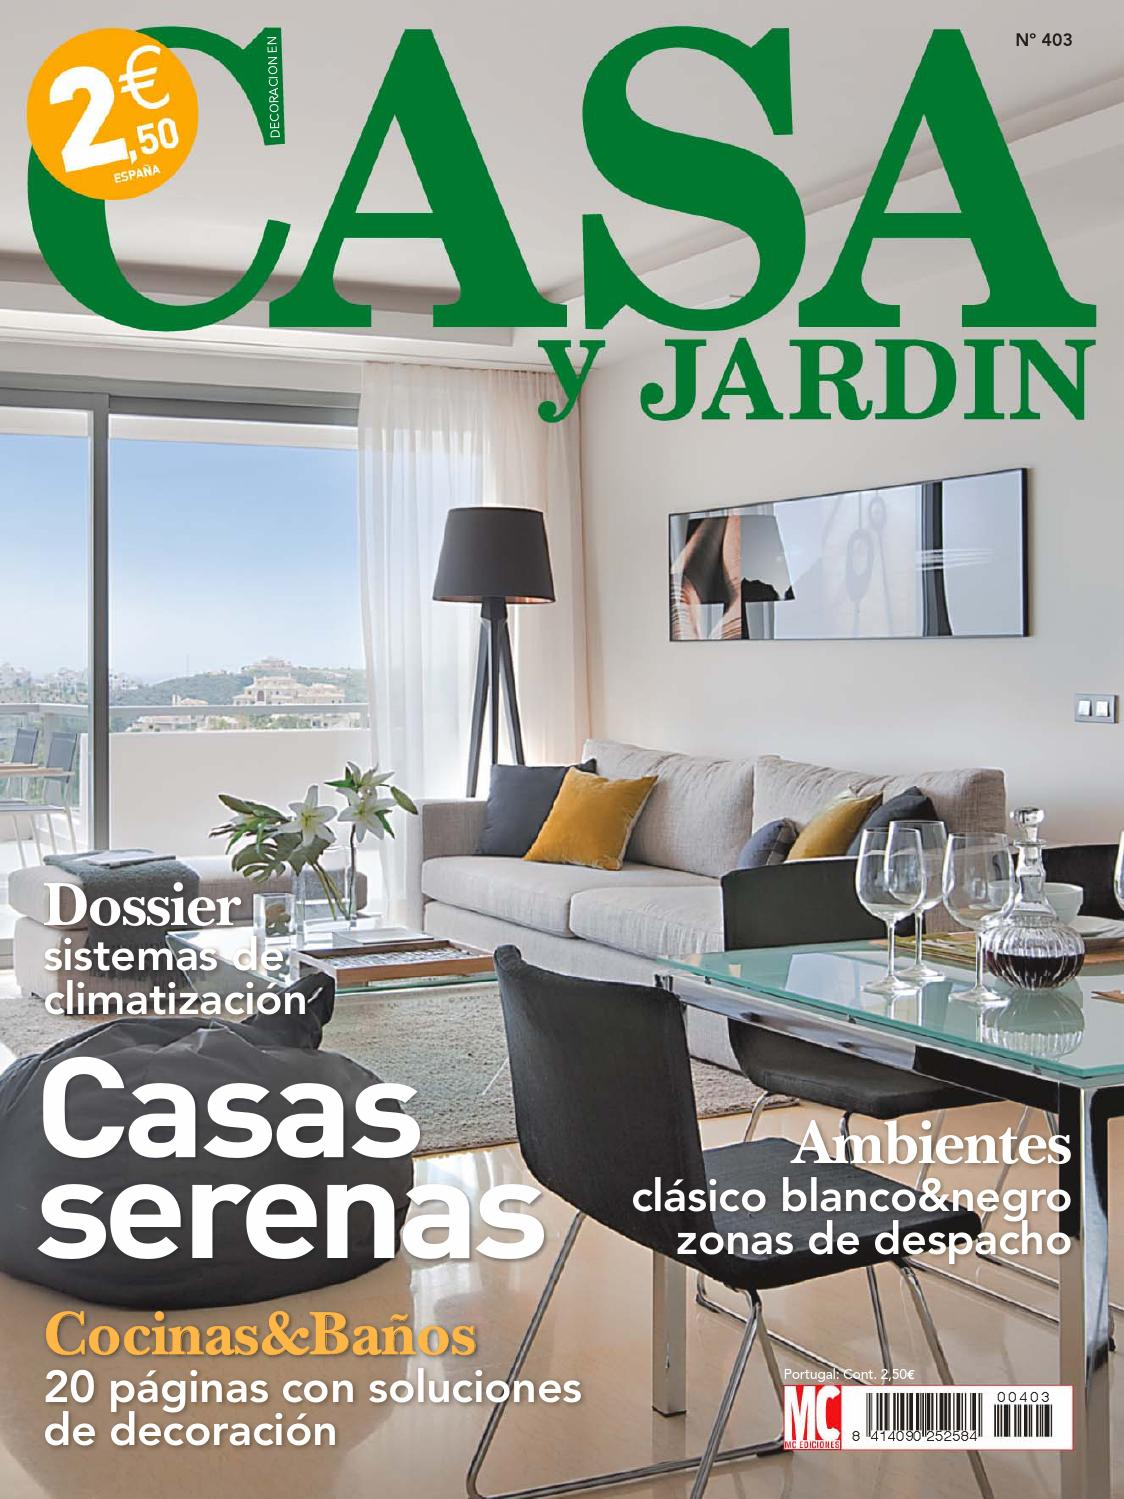 Casa y jardin by sucalon issuu for Casa jardin revista